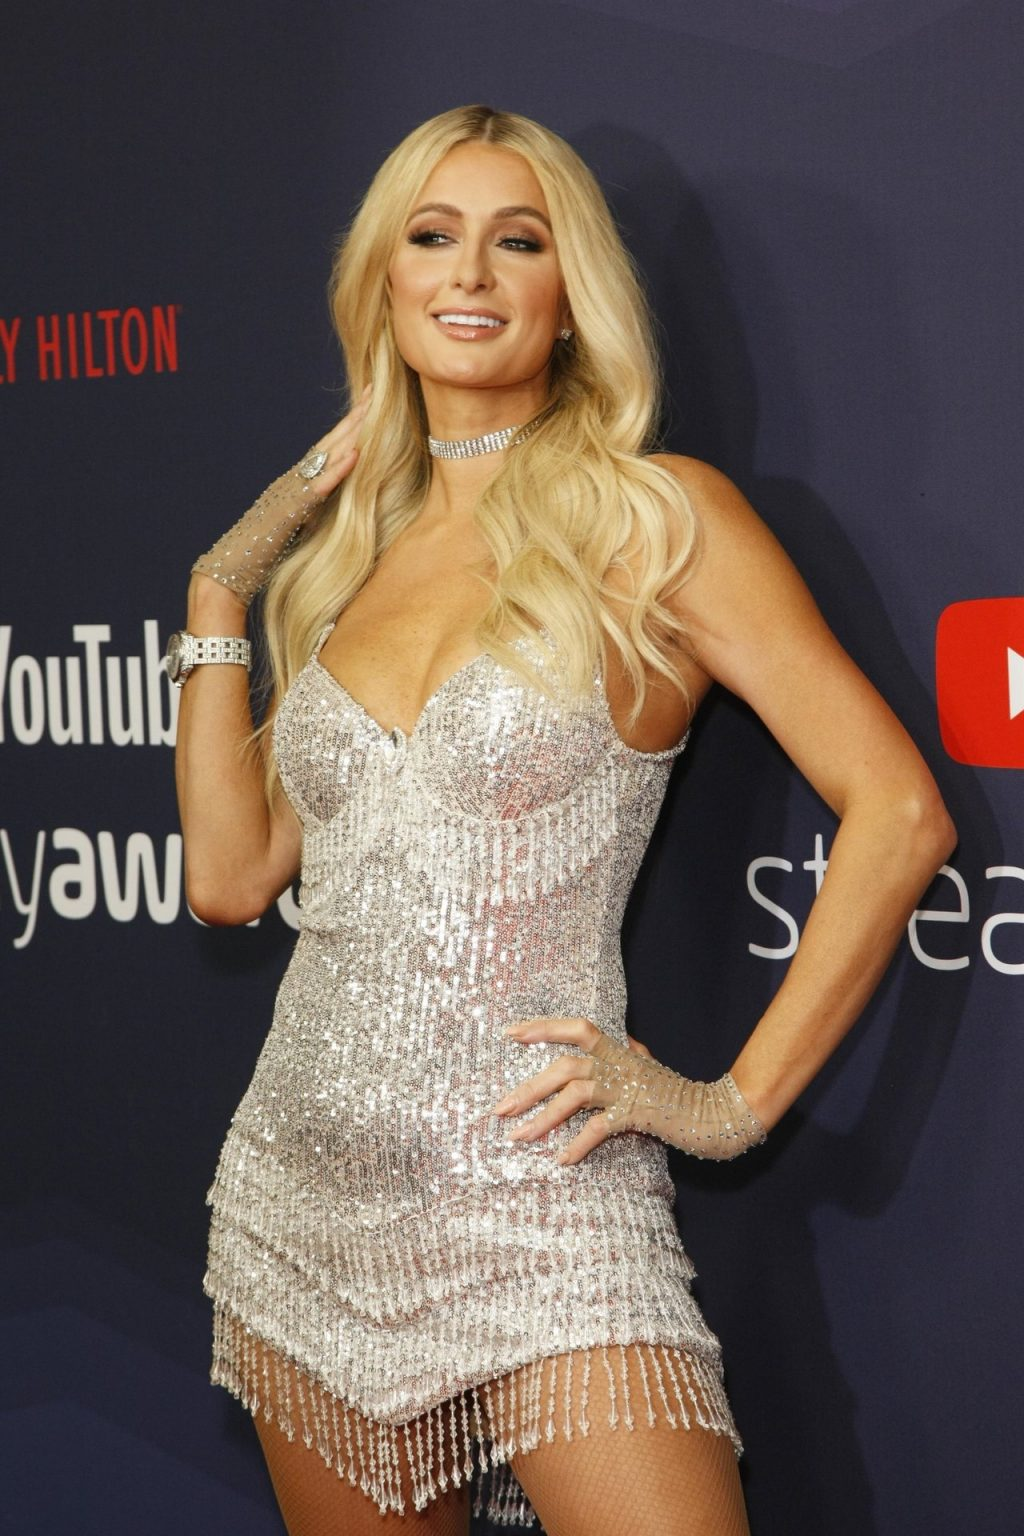 Paris Hilton Sexy (62 Photos + Video)